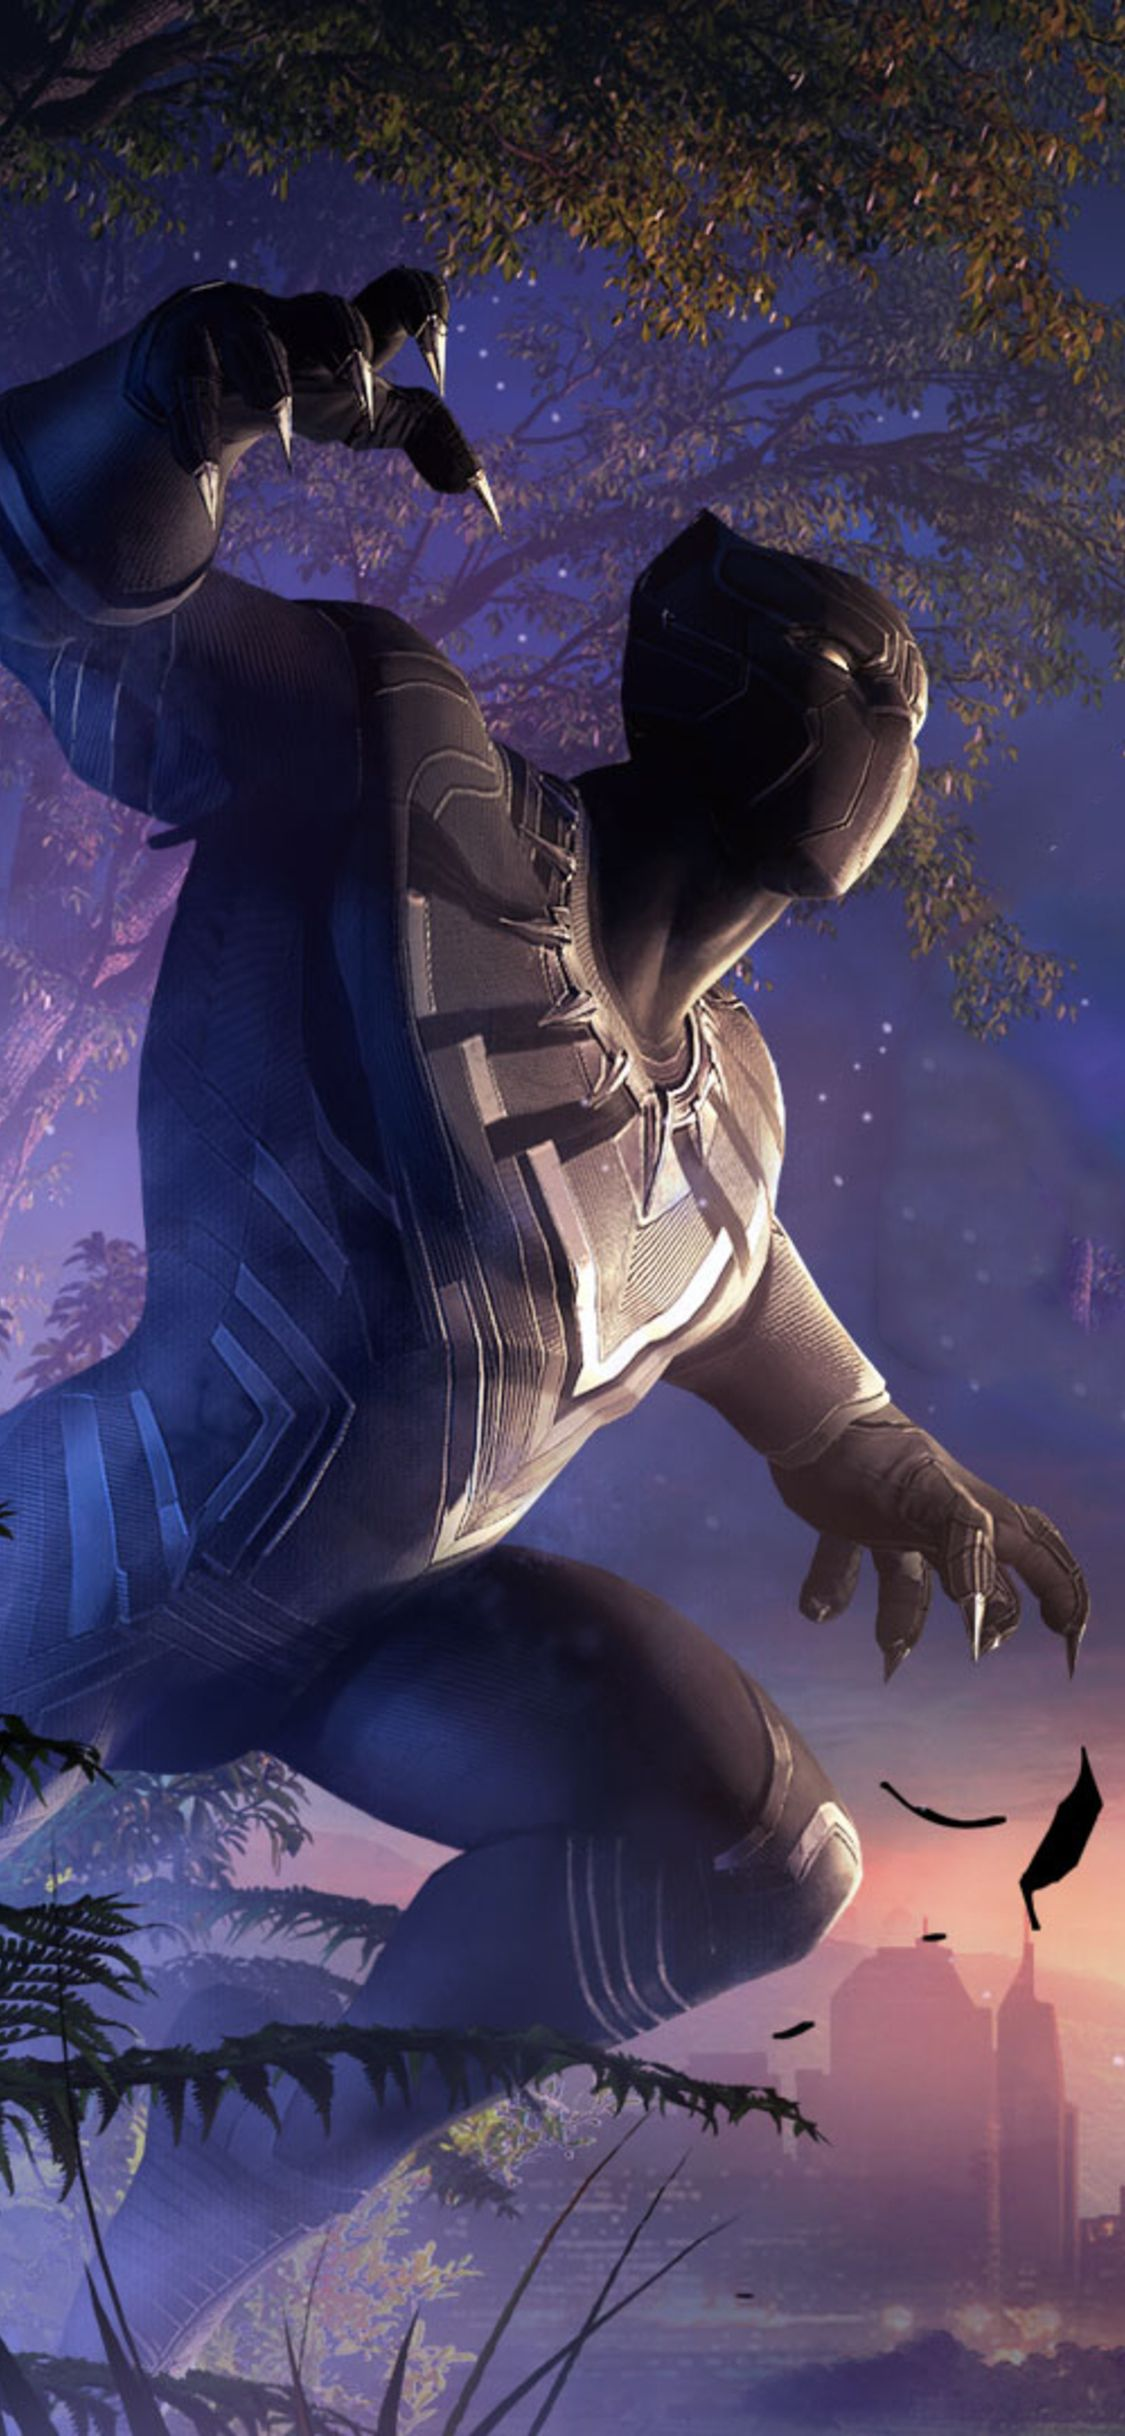 1125x2436 Black Panther And Erik Killmonger Marvel Contest Of Champions Iphone Xs Iphone 10 Ipho Marvel Comics Wallpaper Black Panther Marvel Black Panther Art